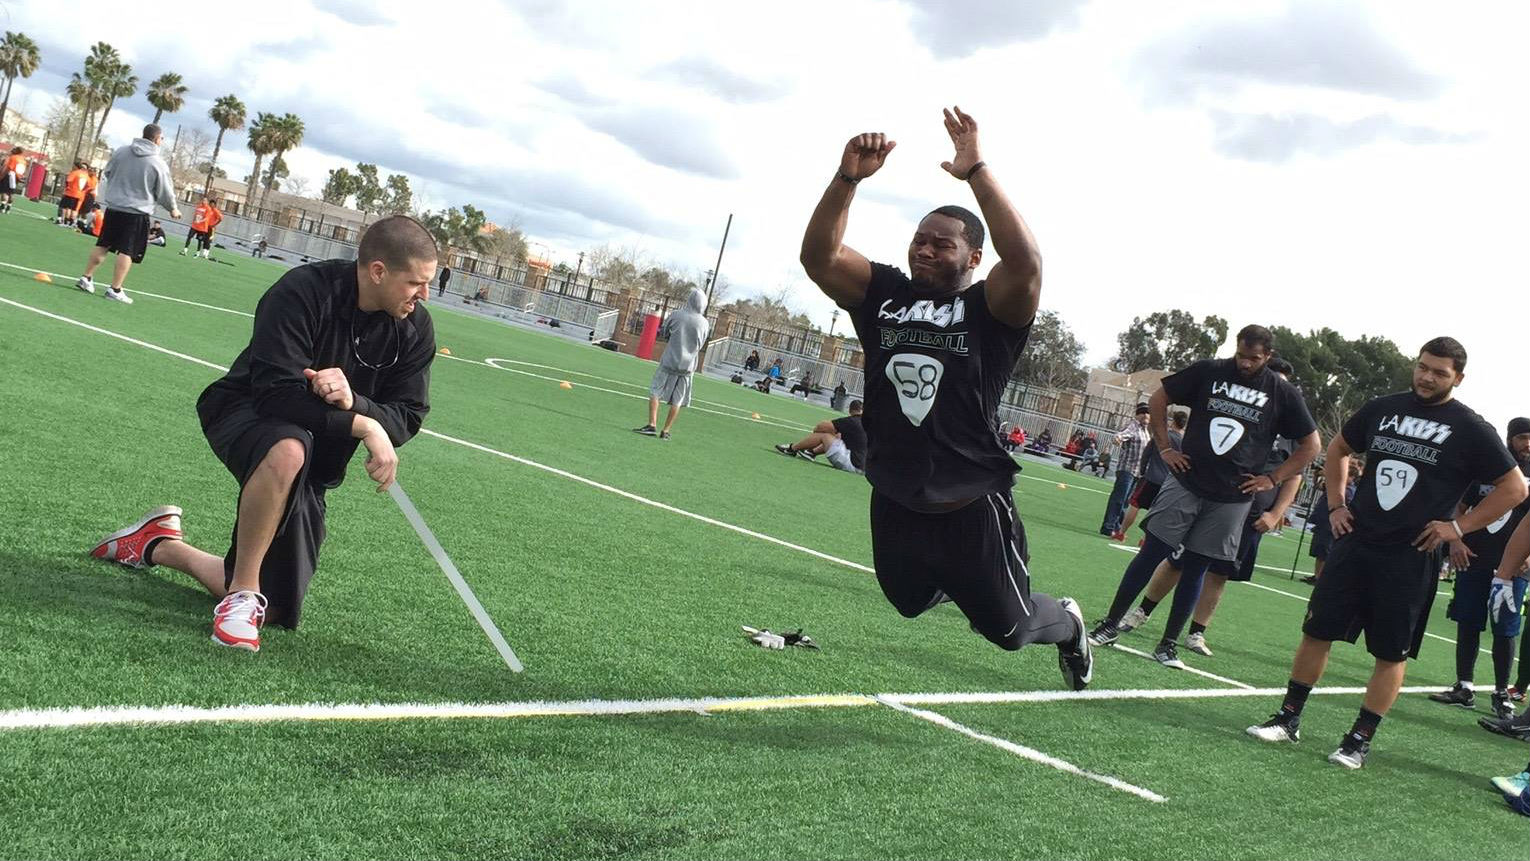 76 attended la kiss final open tryout at santa ana college